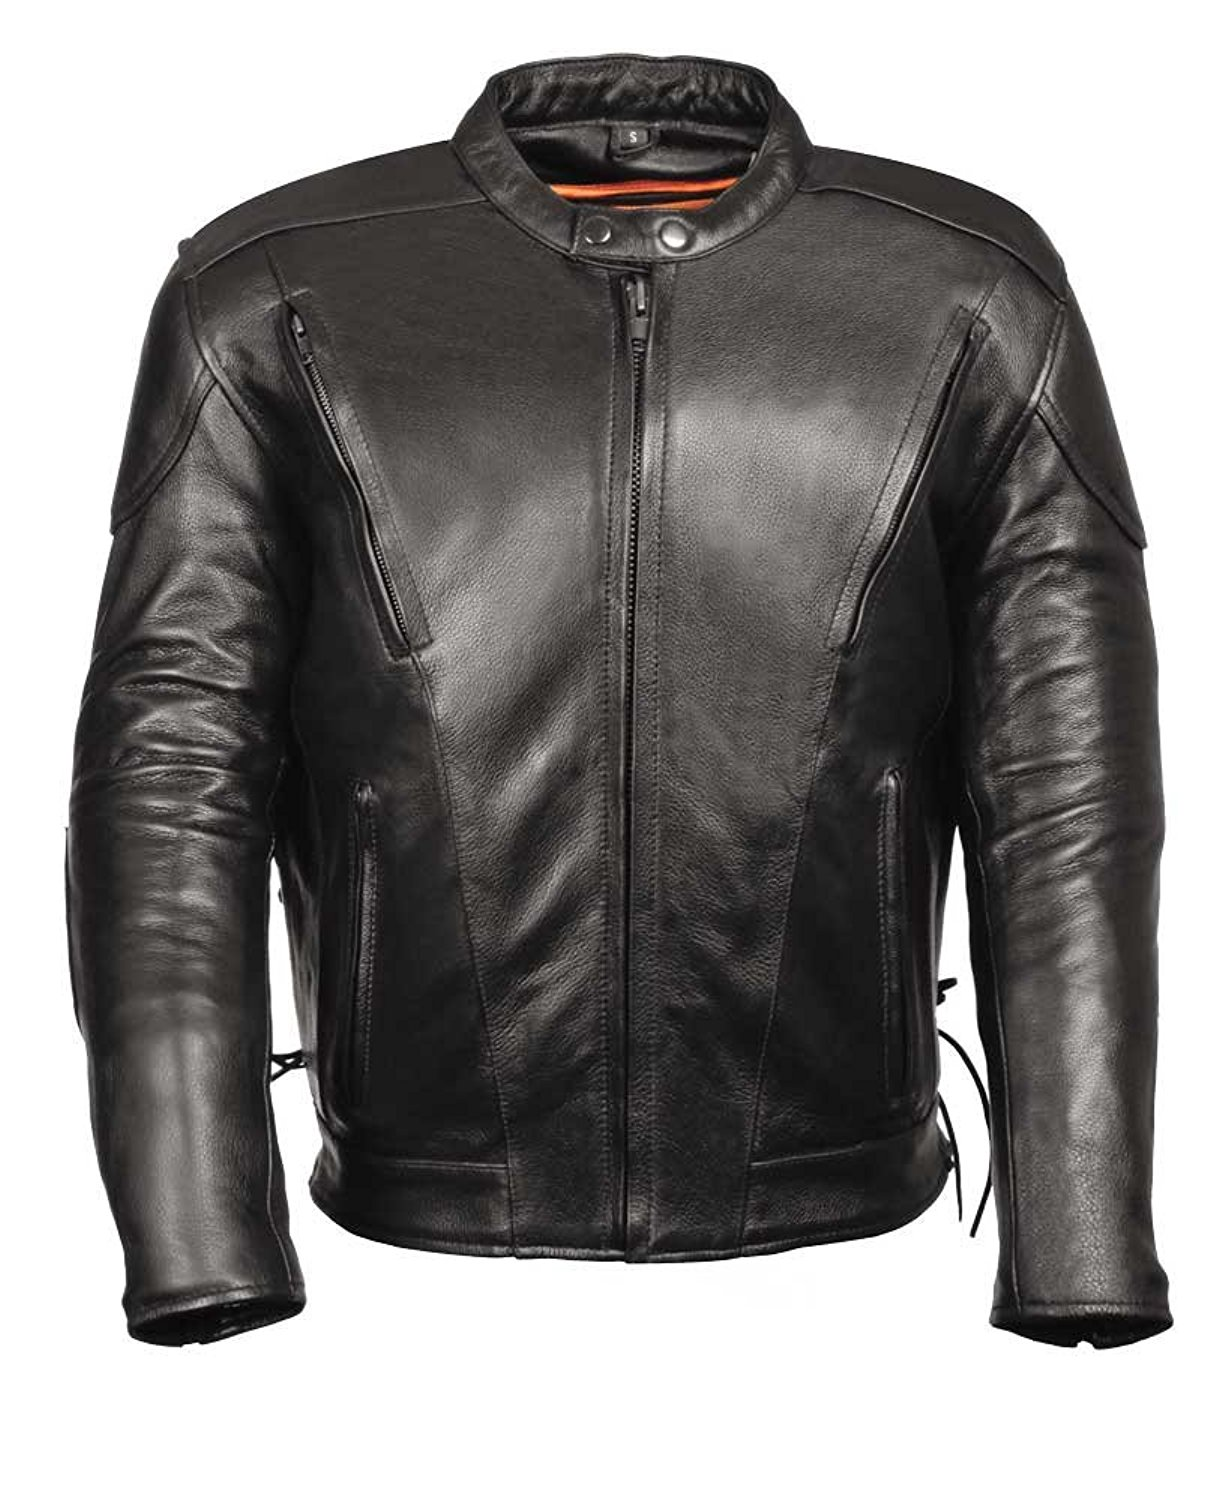 Excliria Mens Fashion Stylish Leather Jacket X-Large